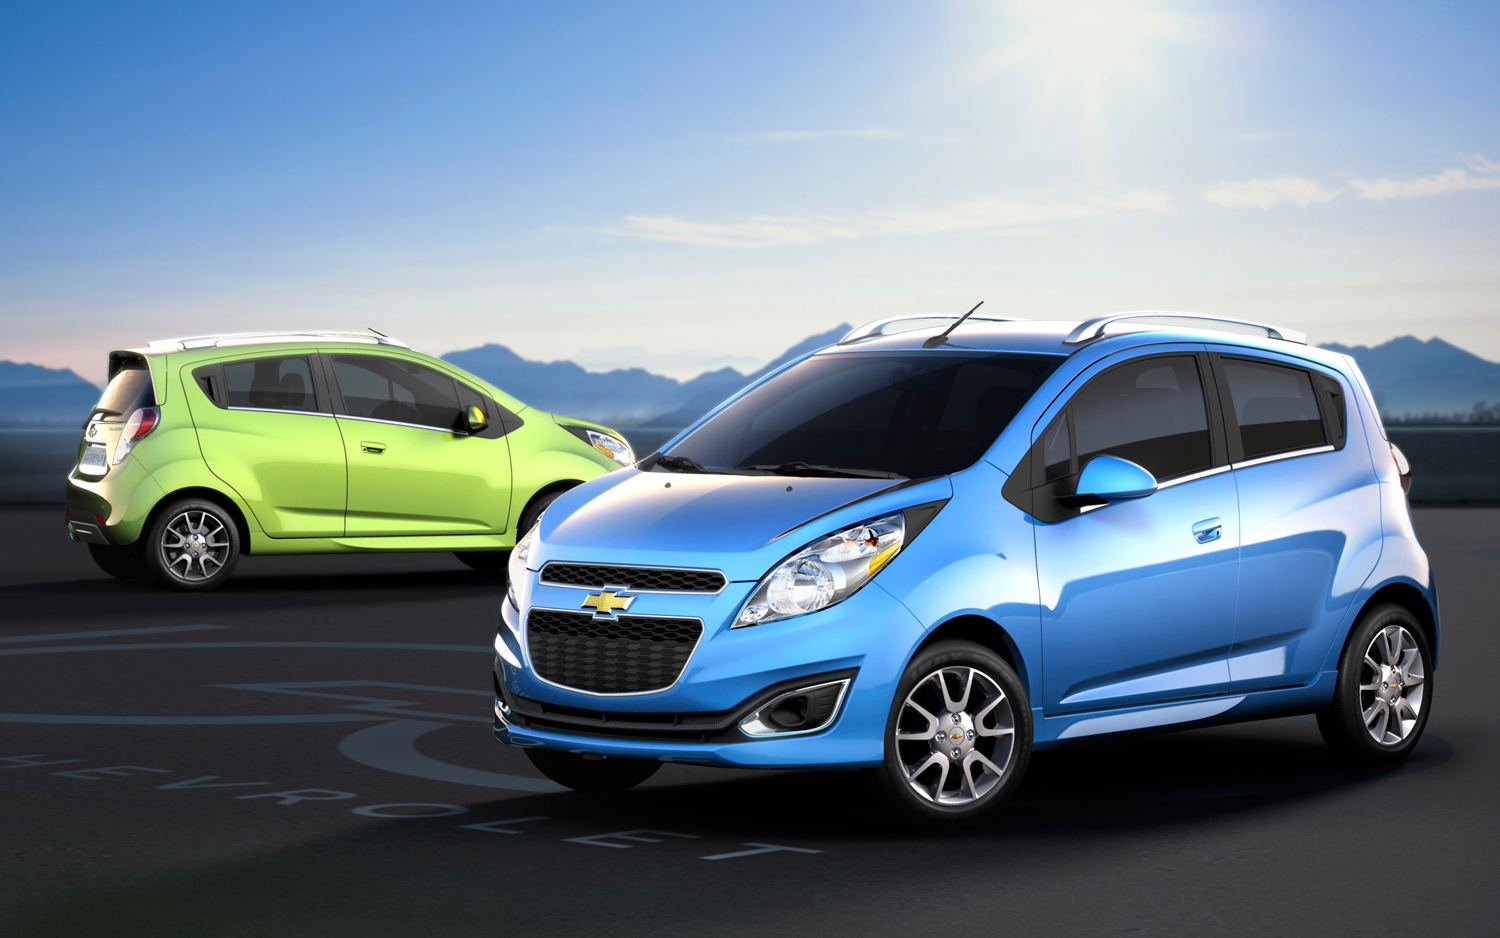 2013 Chevrolet Spark Information And Photos Zombiedrive Engine Origin 19